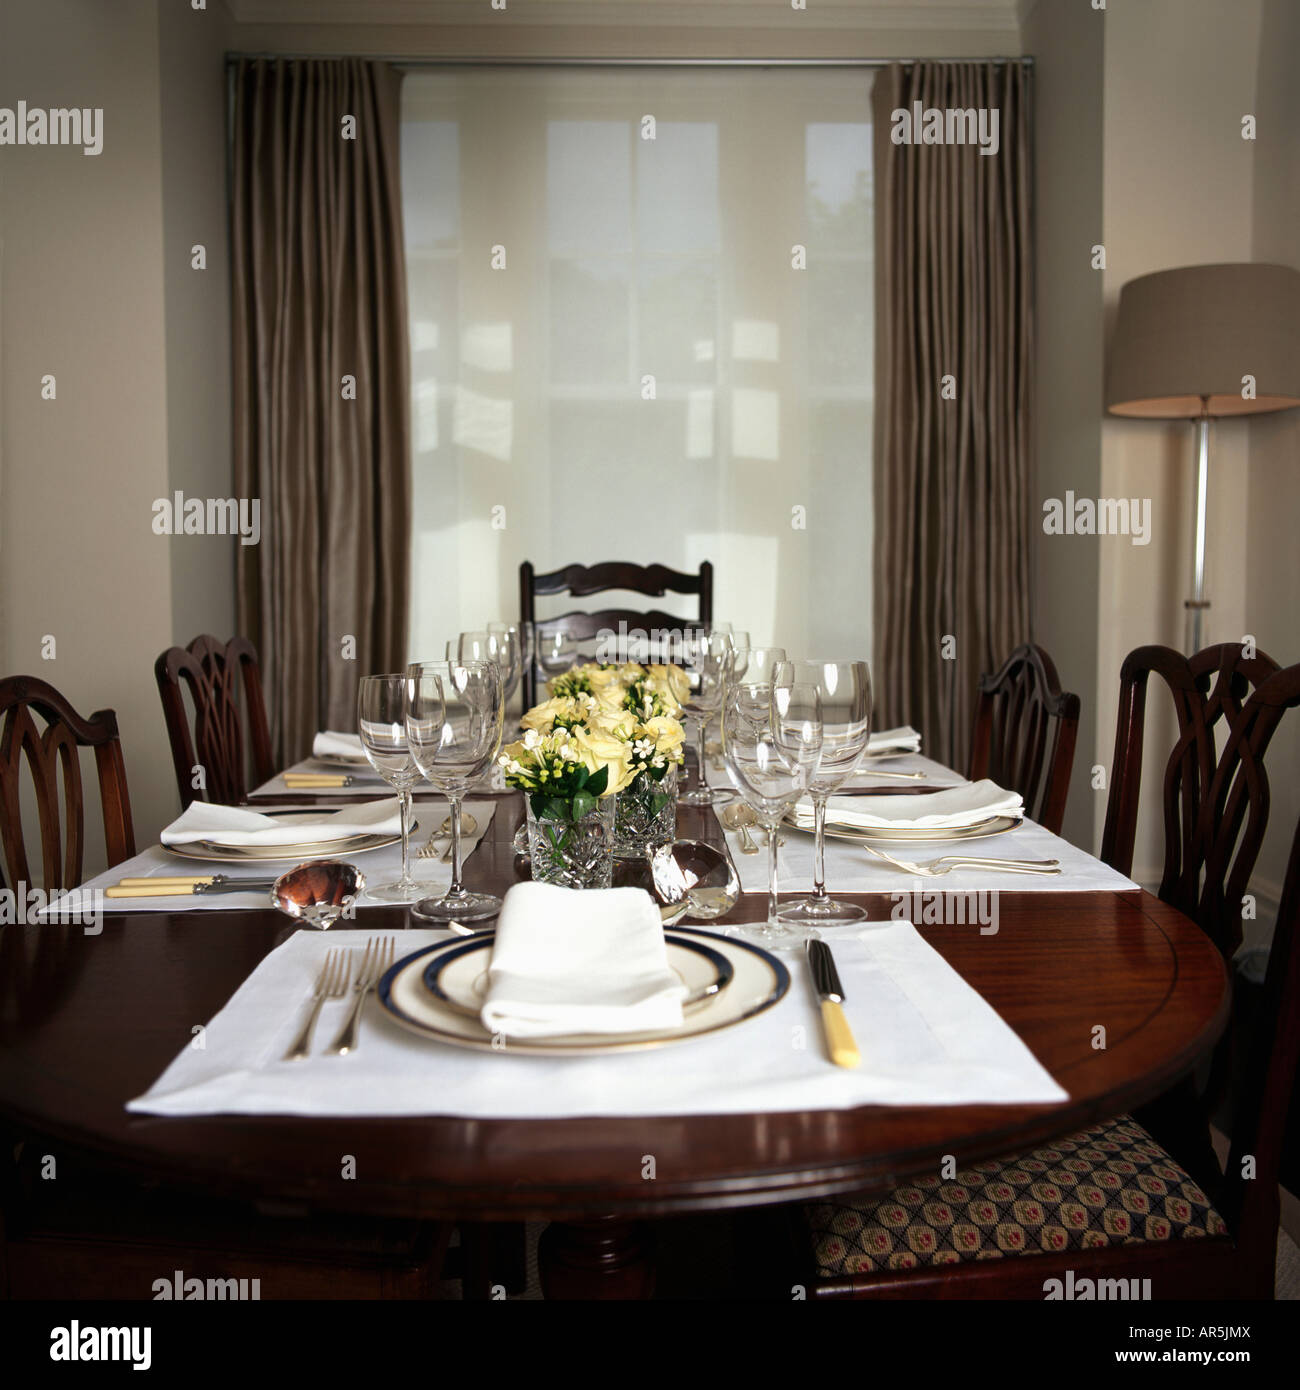 Stock Photo   White Placemats And Plates In Modern Grey Dining Room With  White Blind And Grey Curtains